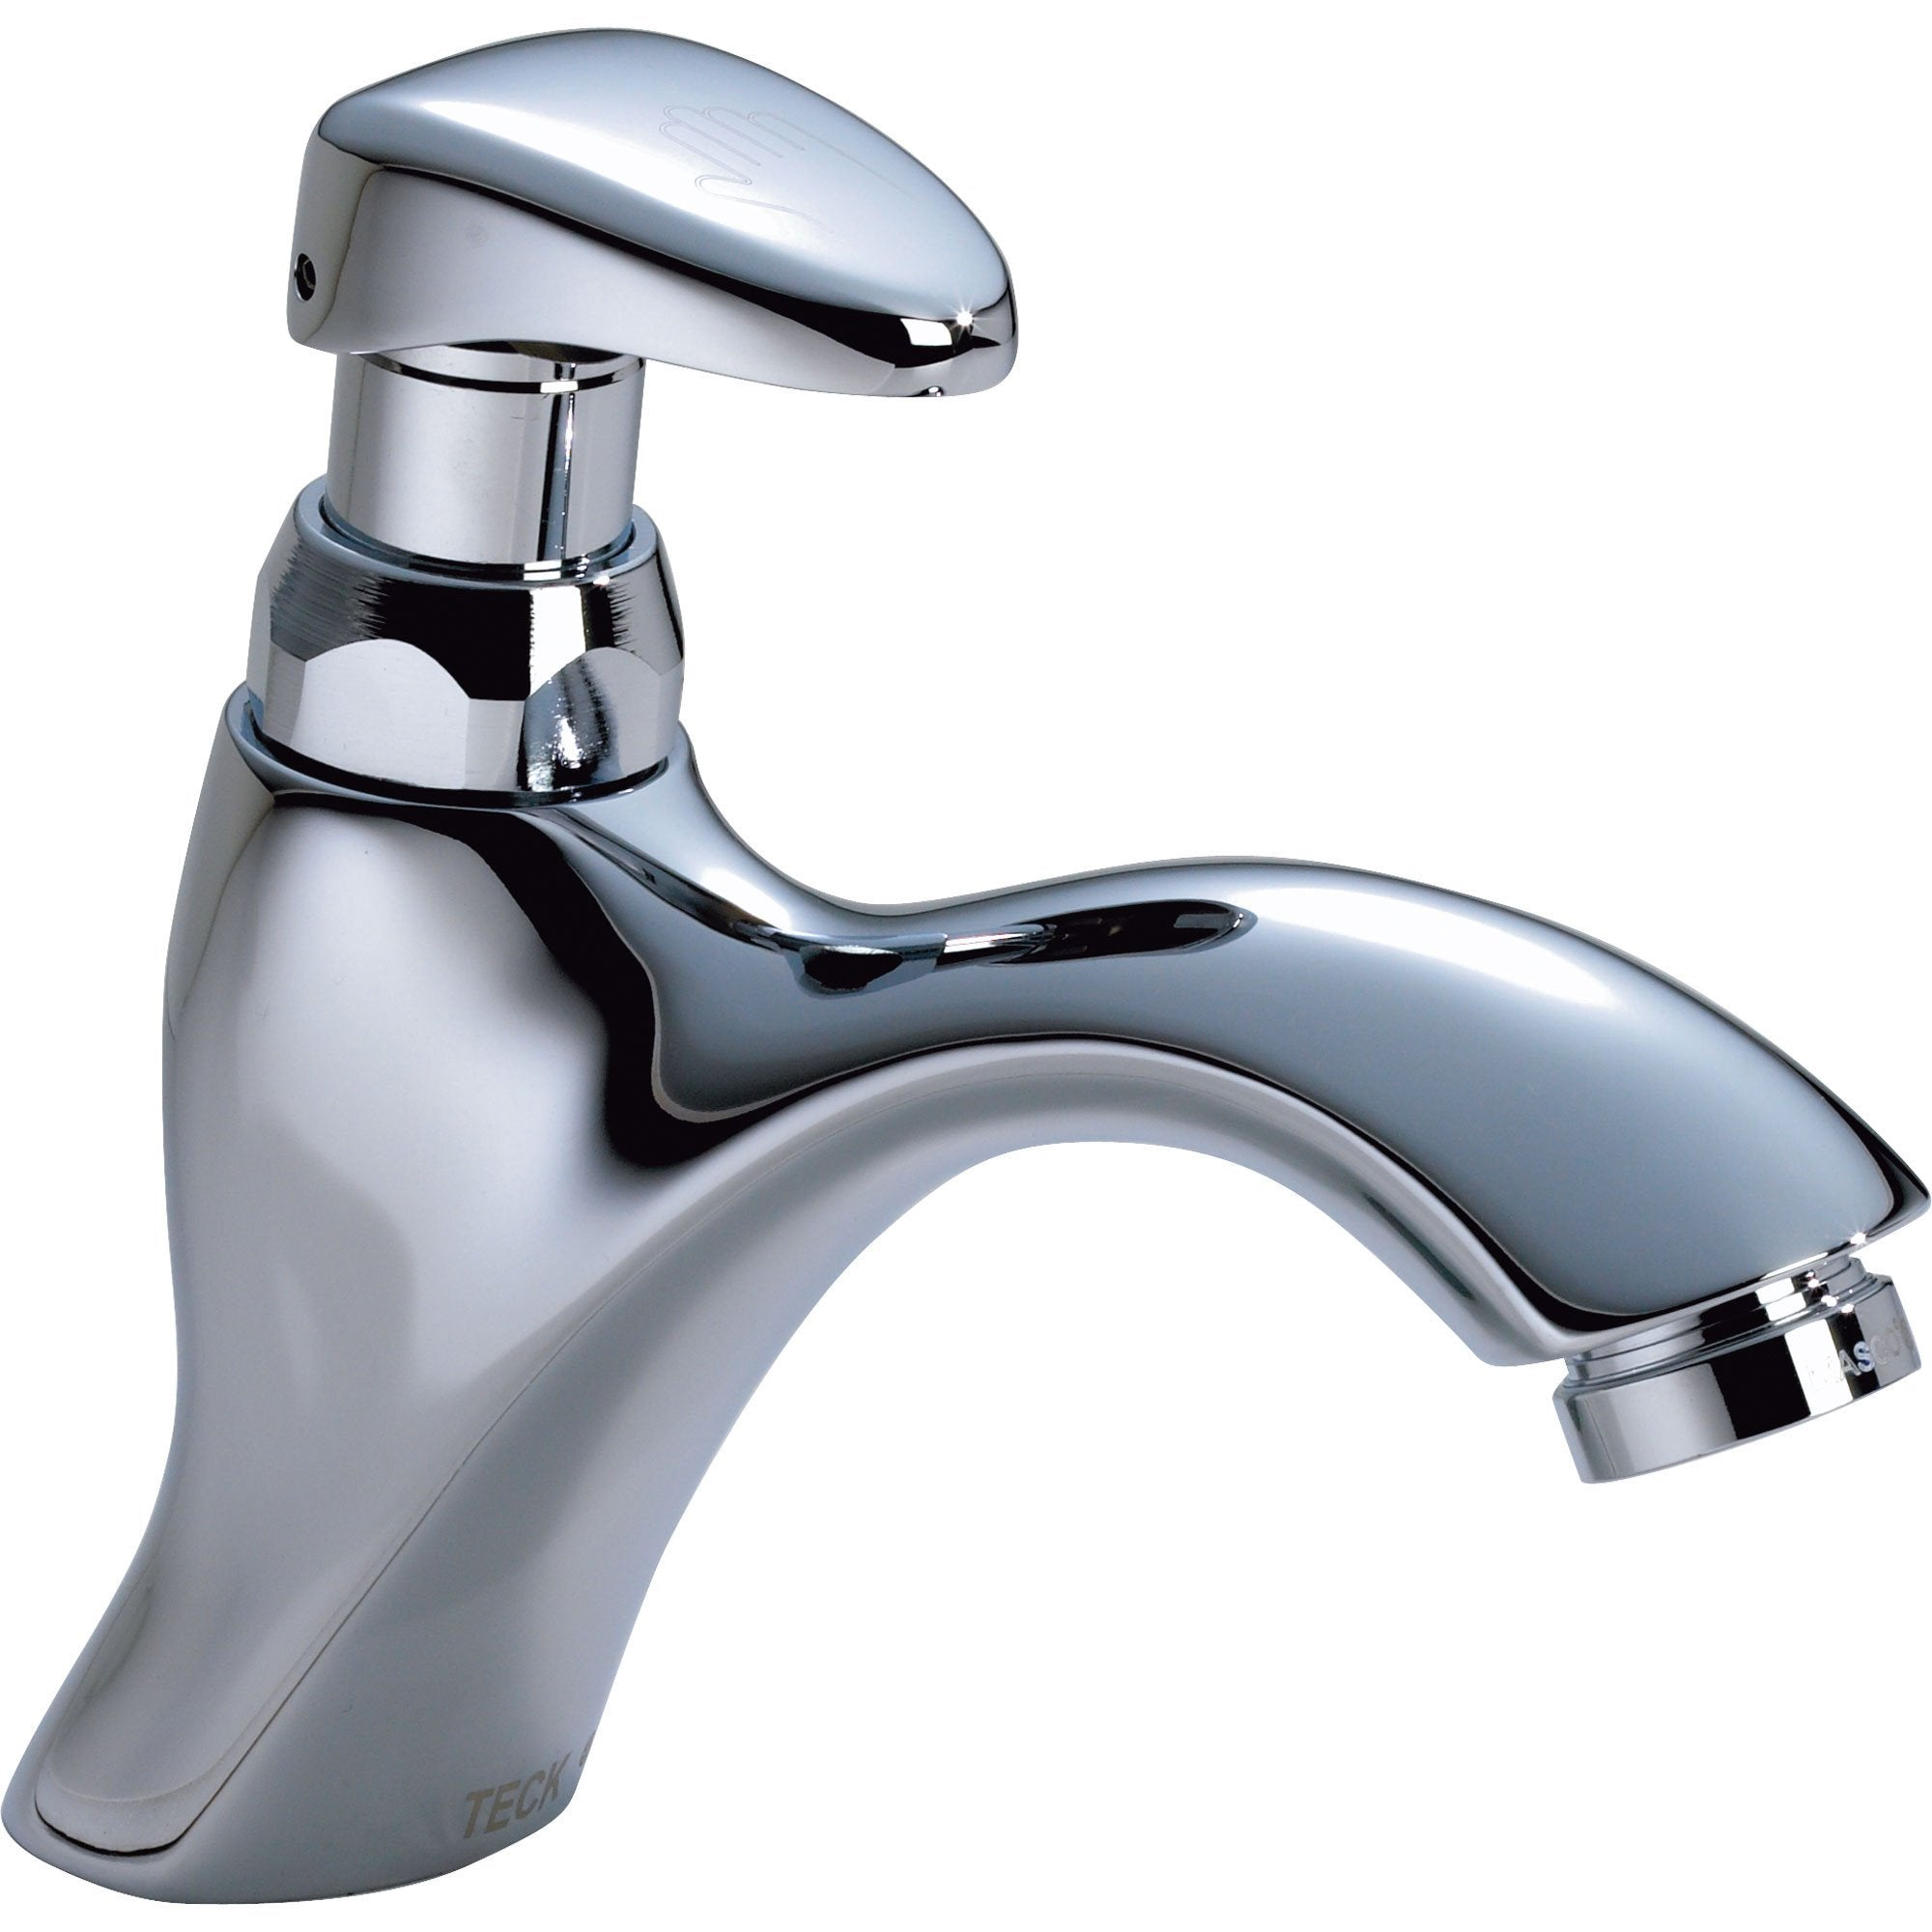 Delta Commercial Mid-Arc Metering Slow-Close Bathroom Faucet in Chrome 608707